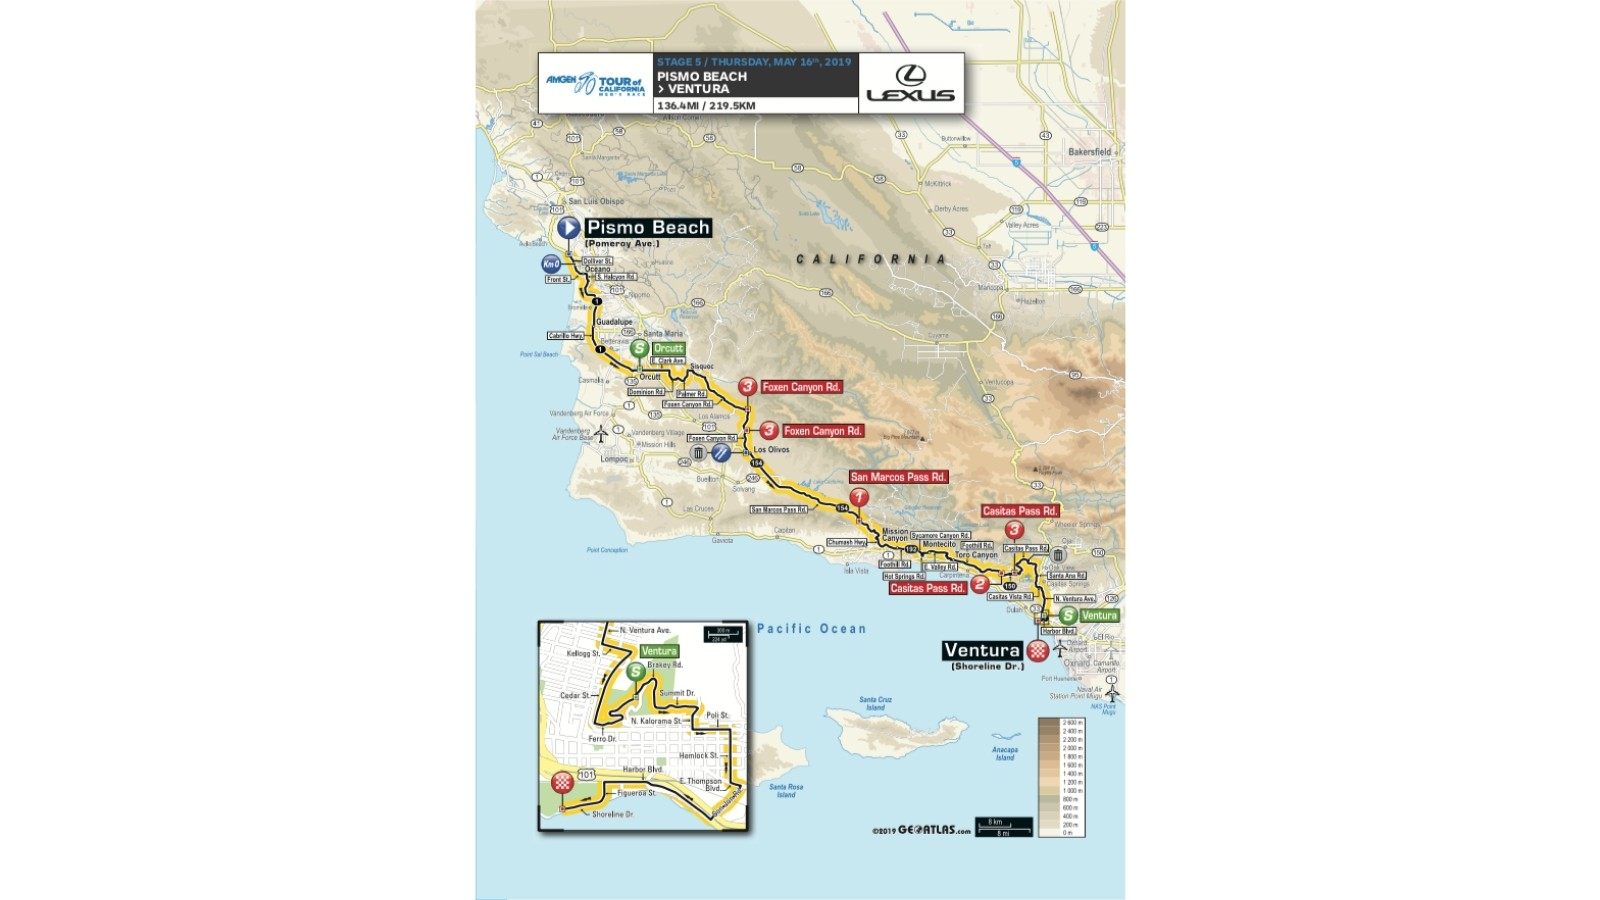 Amgen Tour of California 2019 men's race stage 5 route map